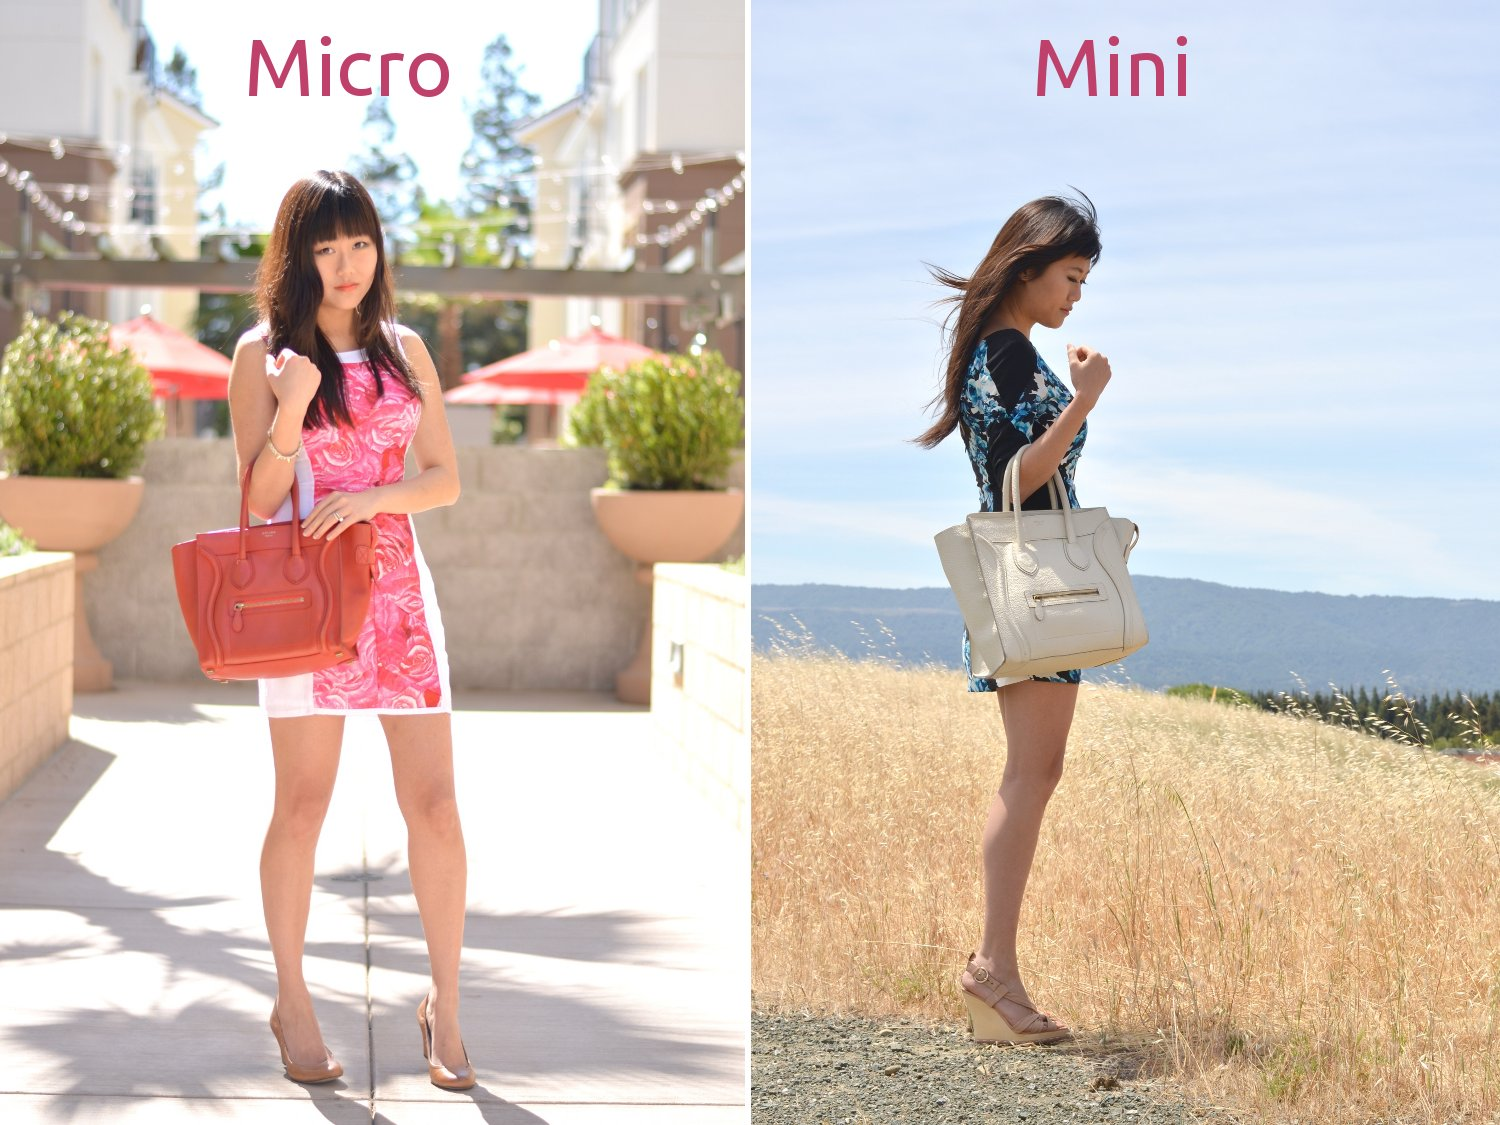 celine designer sve3  Celine designer bag mini compared to micro size difference in outfit